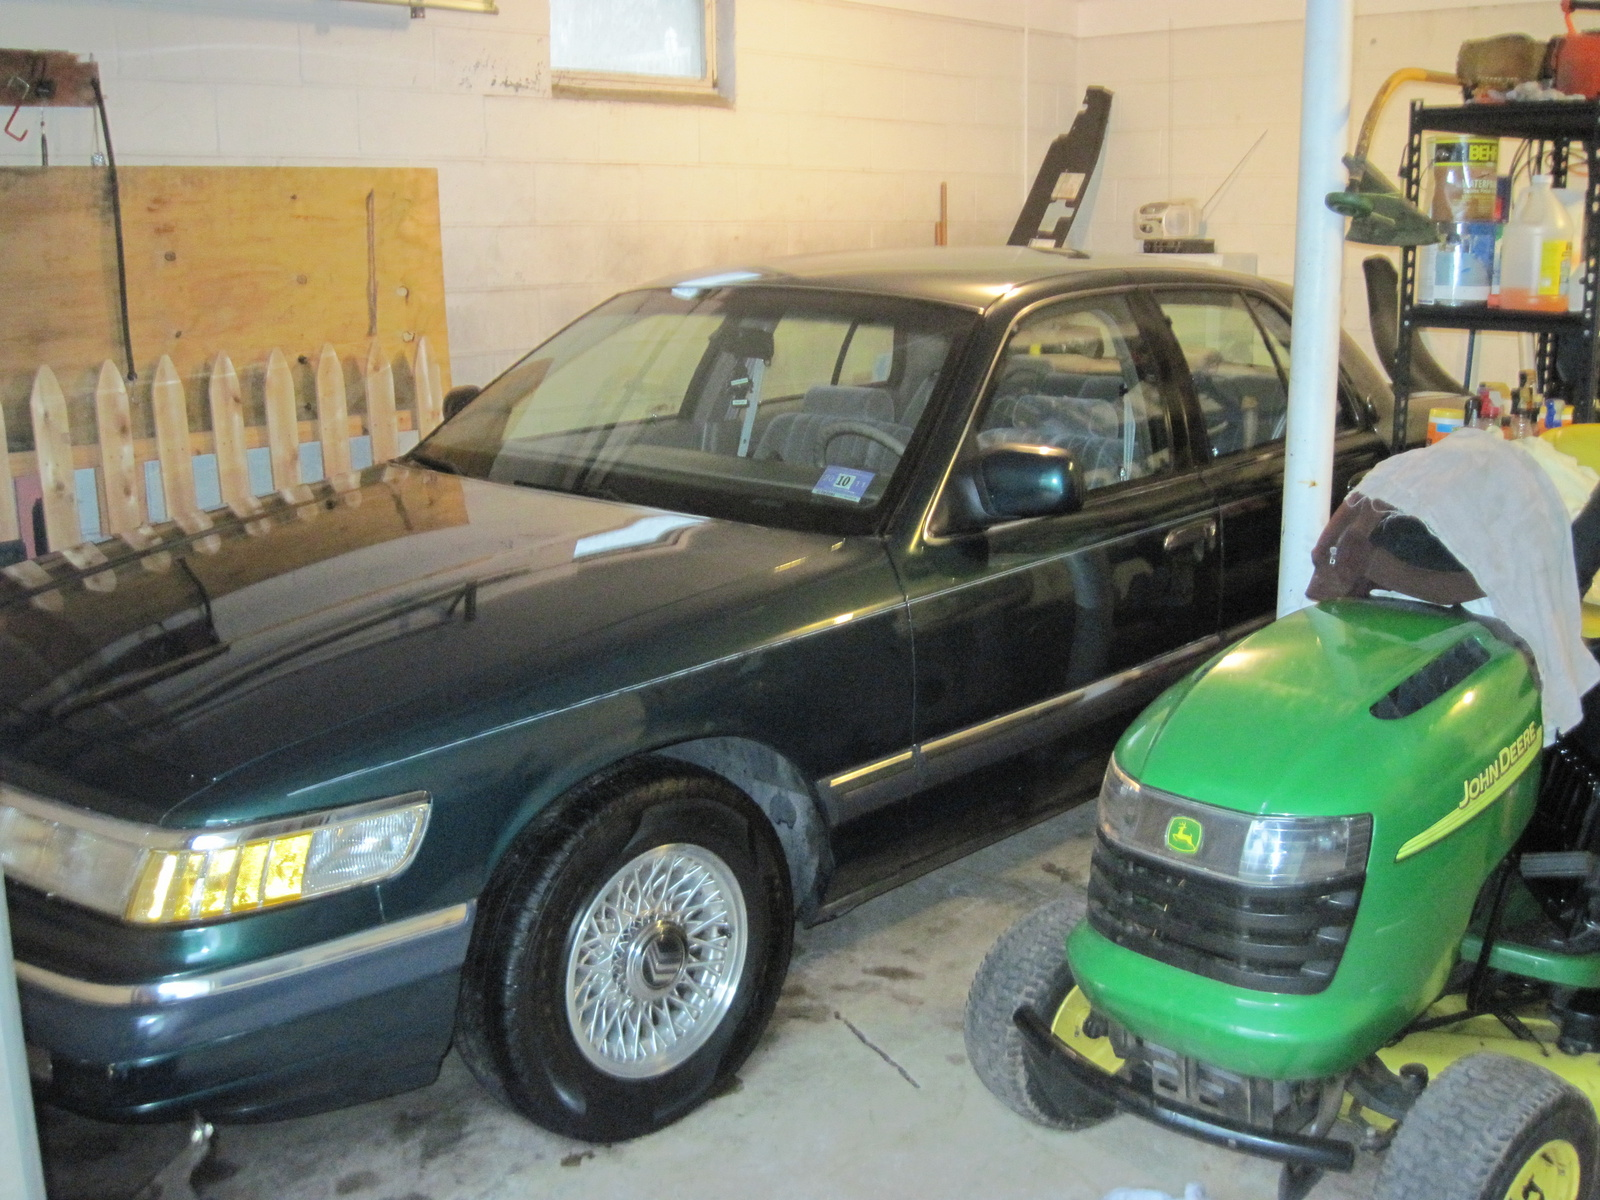 1993 Mercury Grand Marquis 4 Dr GS Sedan picture